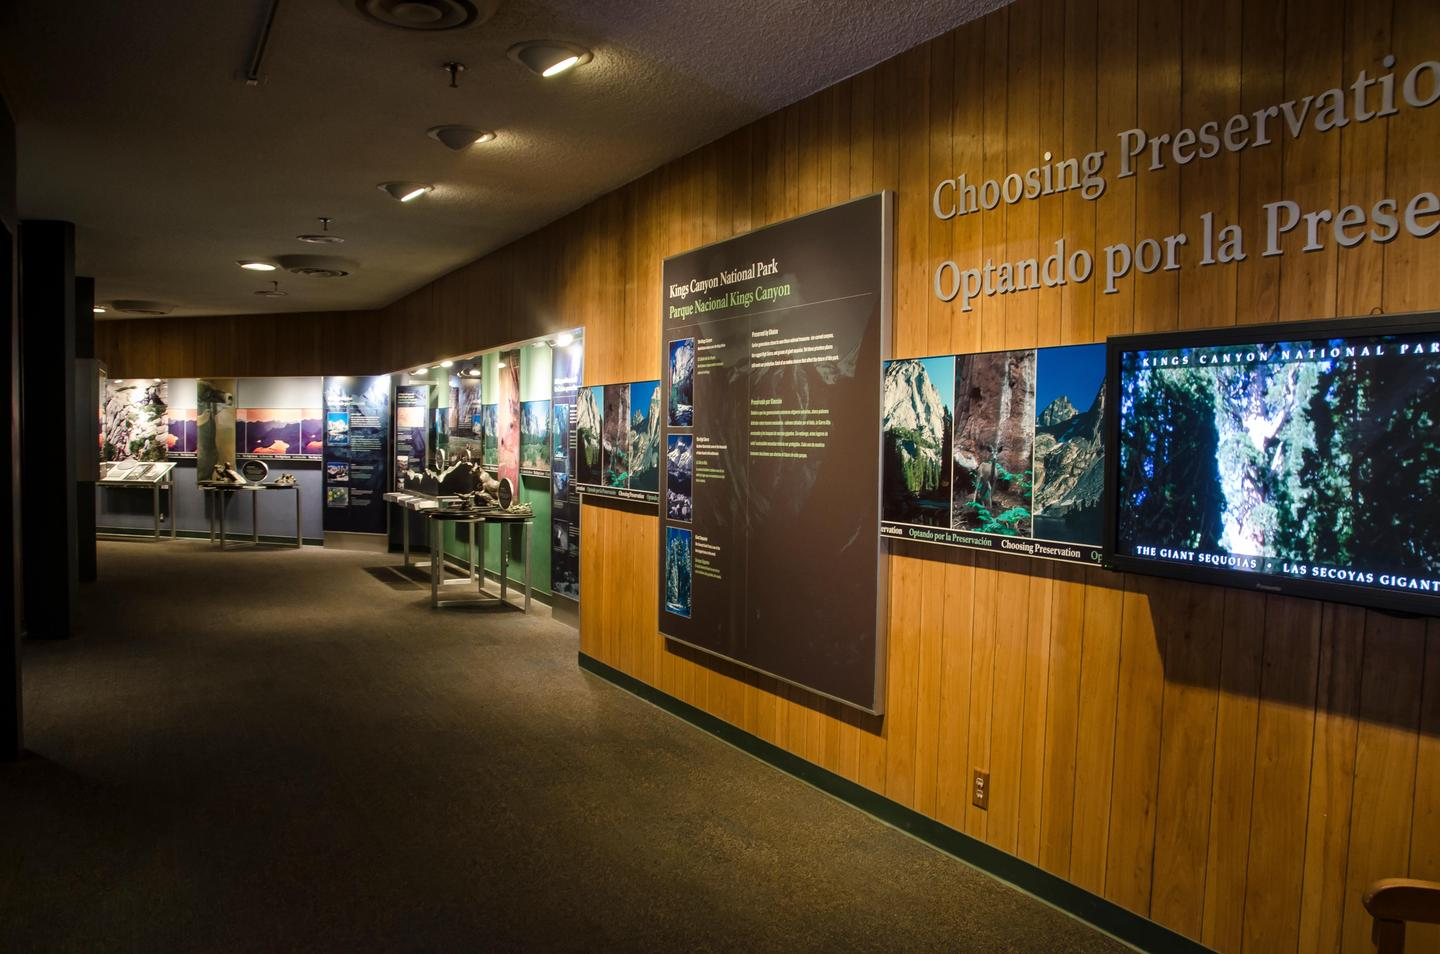 Kings Canyon Visitor CenterThe visitor center features several exhibits, including videos, tactile exhibits, and a movie theater.